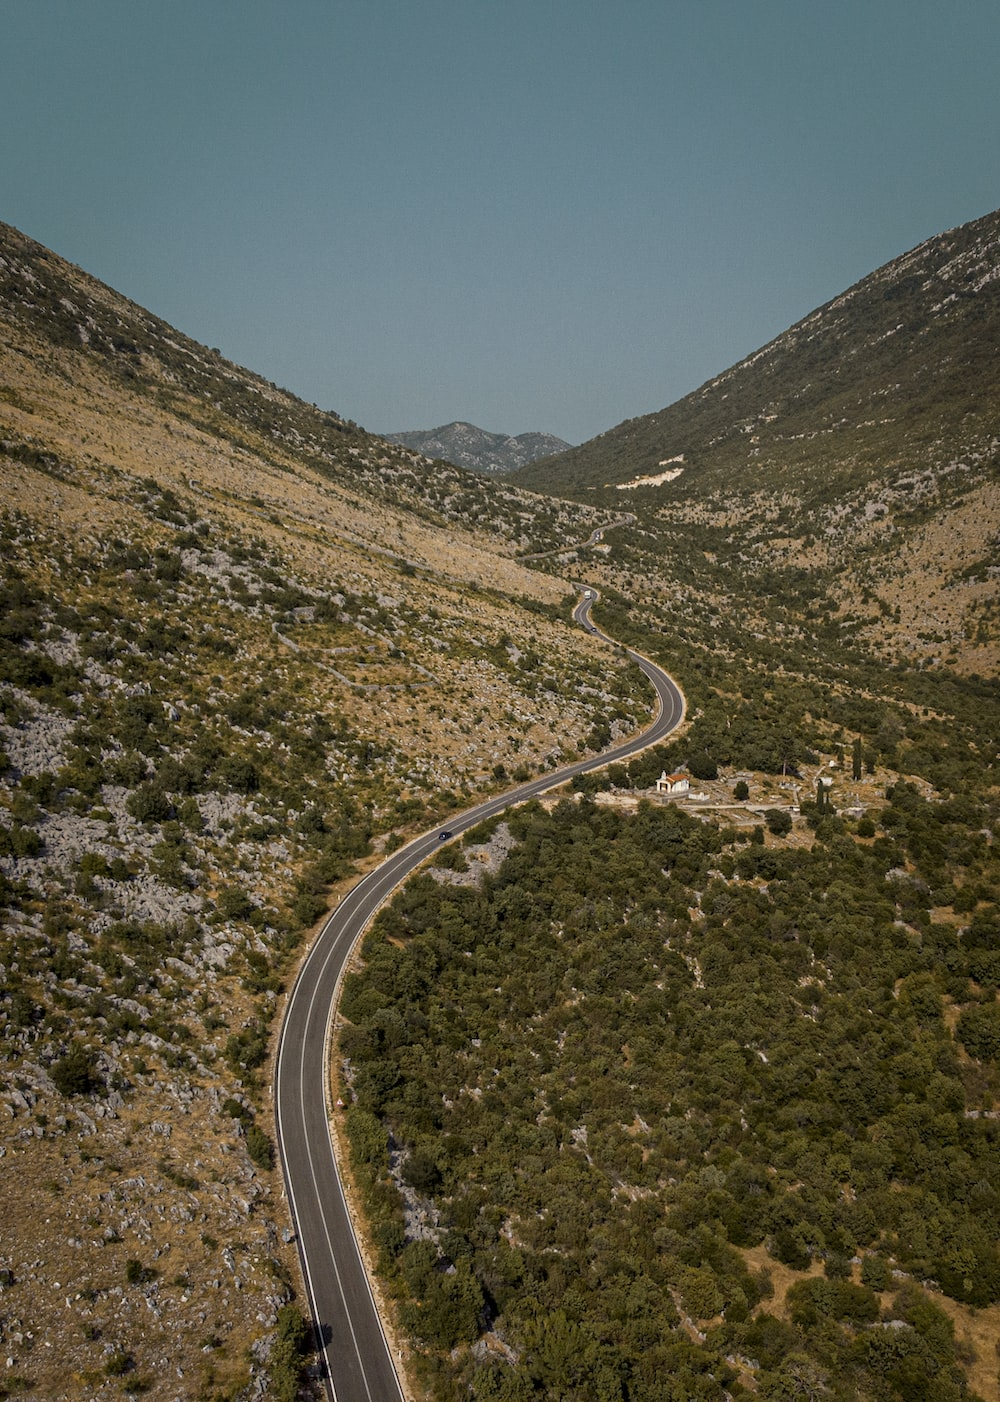 aerial view of road between green trees and mountains during daytime